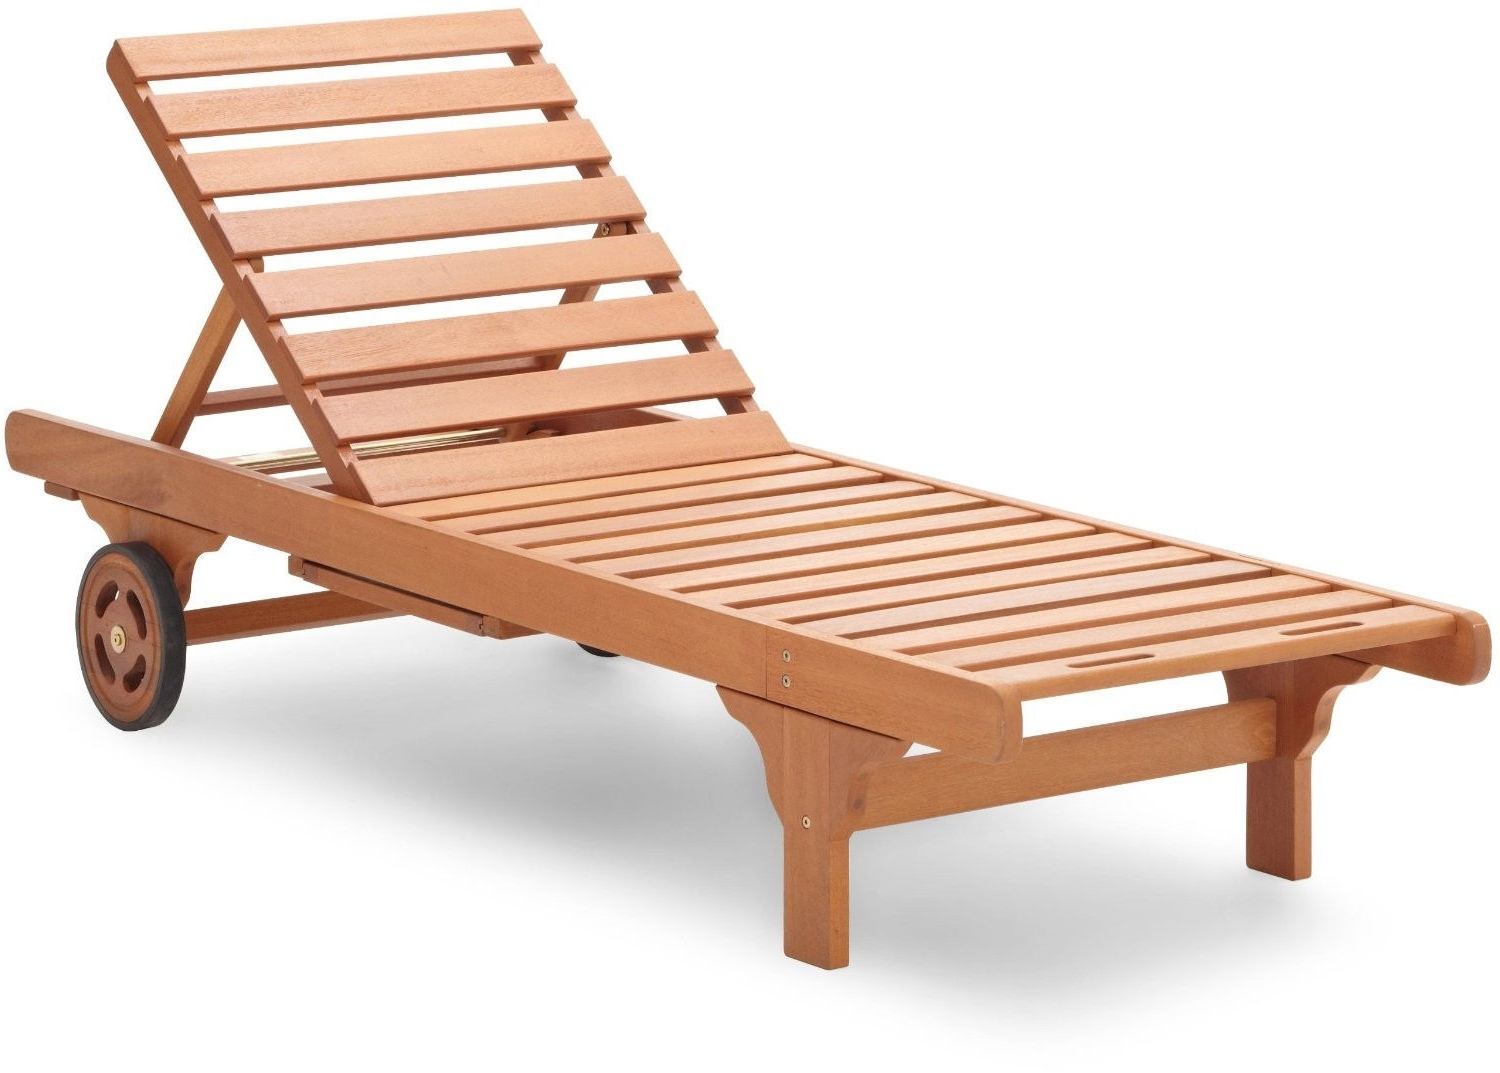 Wood Chaise Lounges Intended For Recent Wood Chaise Lounge Chairs • Lounge Chairs Ideas (View 12 of 15)